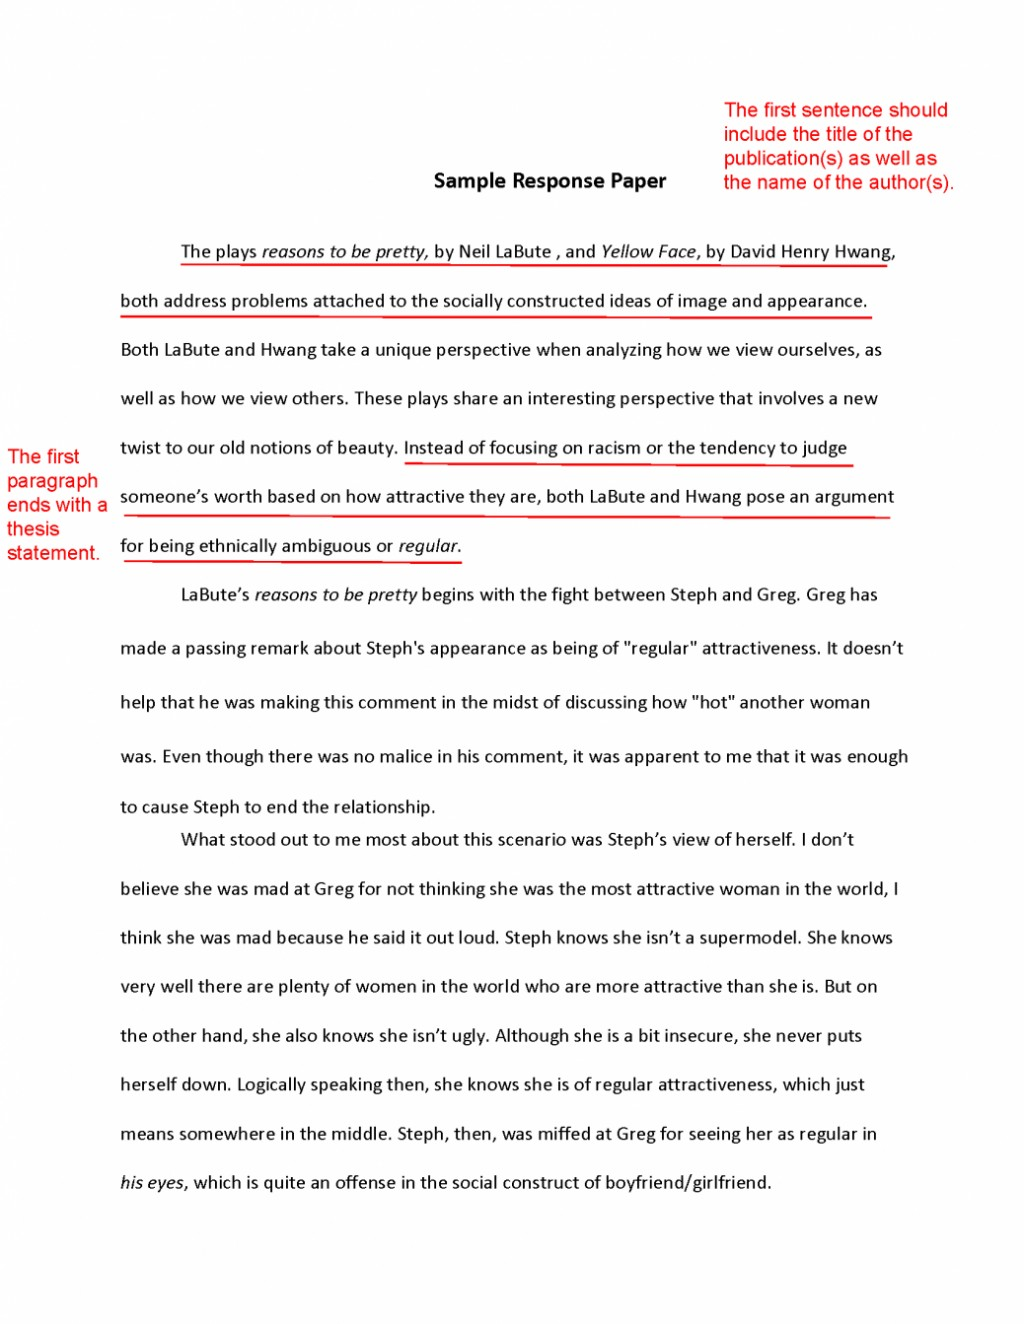 017 Proposal Essay Topics List Response Sociology Template Proposing Solution Examples Responce 1038x1343 Research Paper Of Rare Papers Large